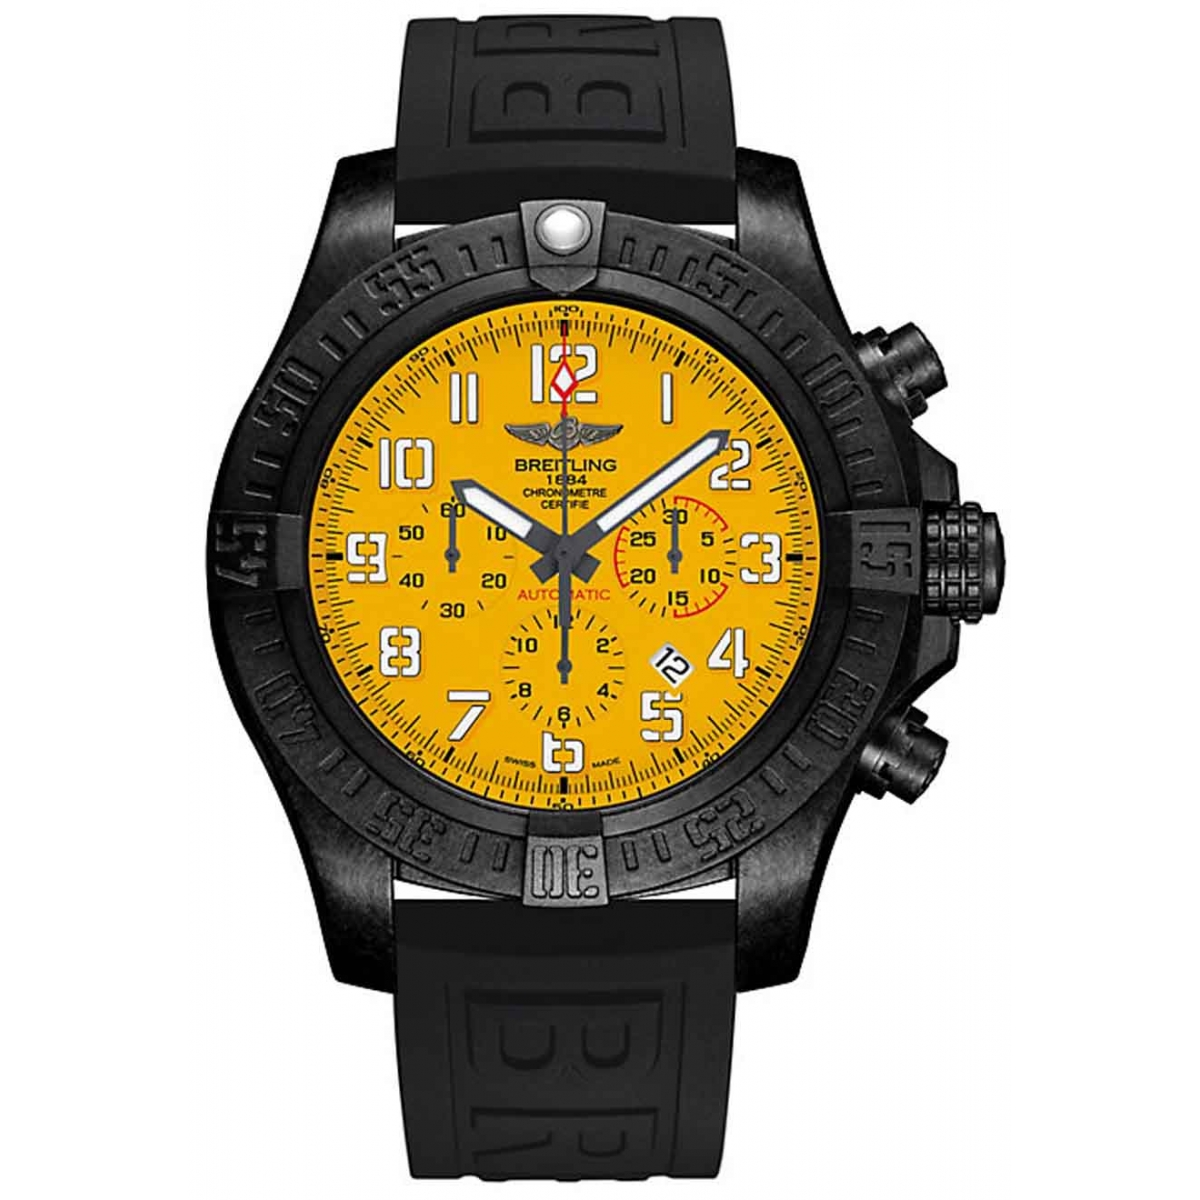 Breitling Hurricane - 100 M - ∅50 mm, Esfera Cobra Yellow, Caucho